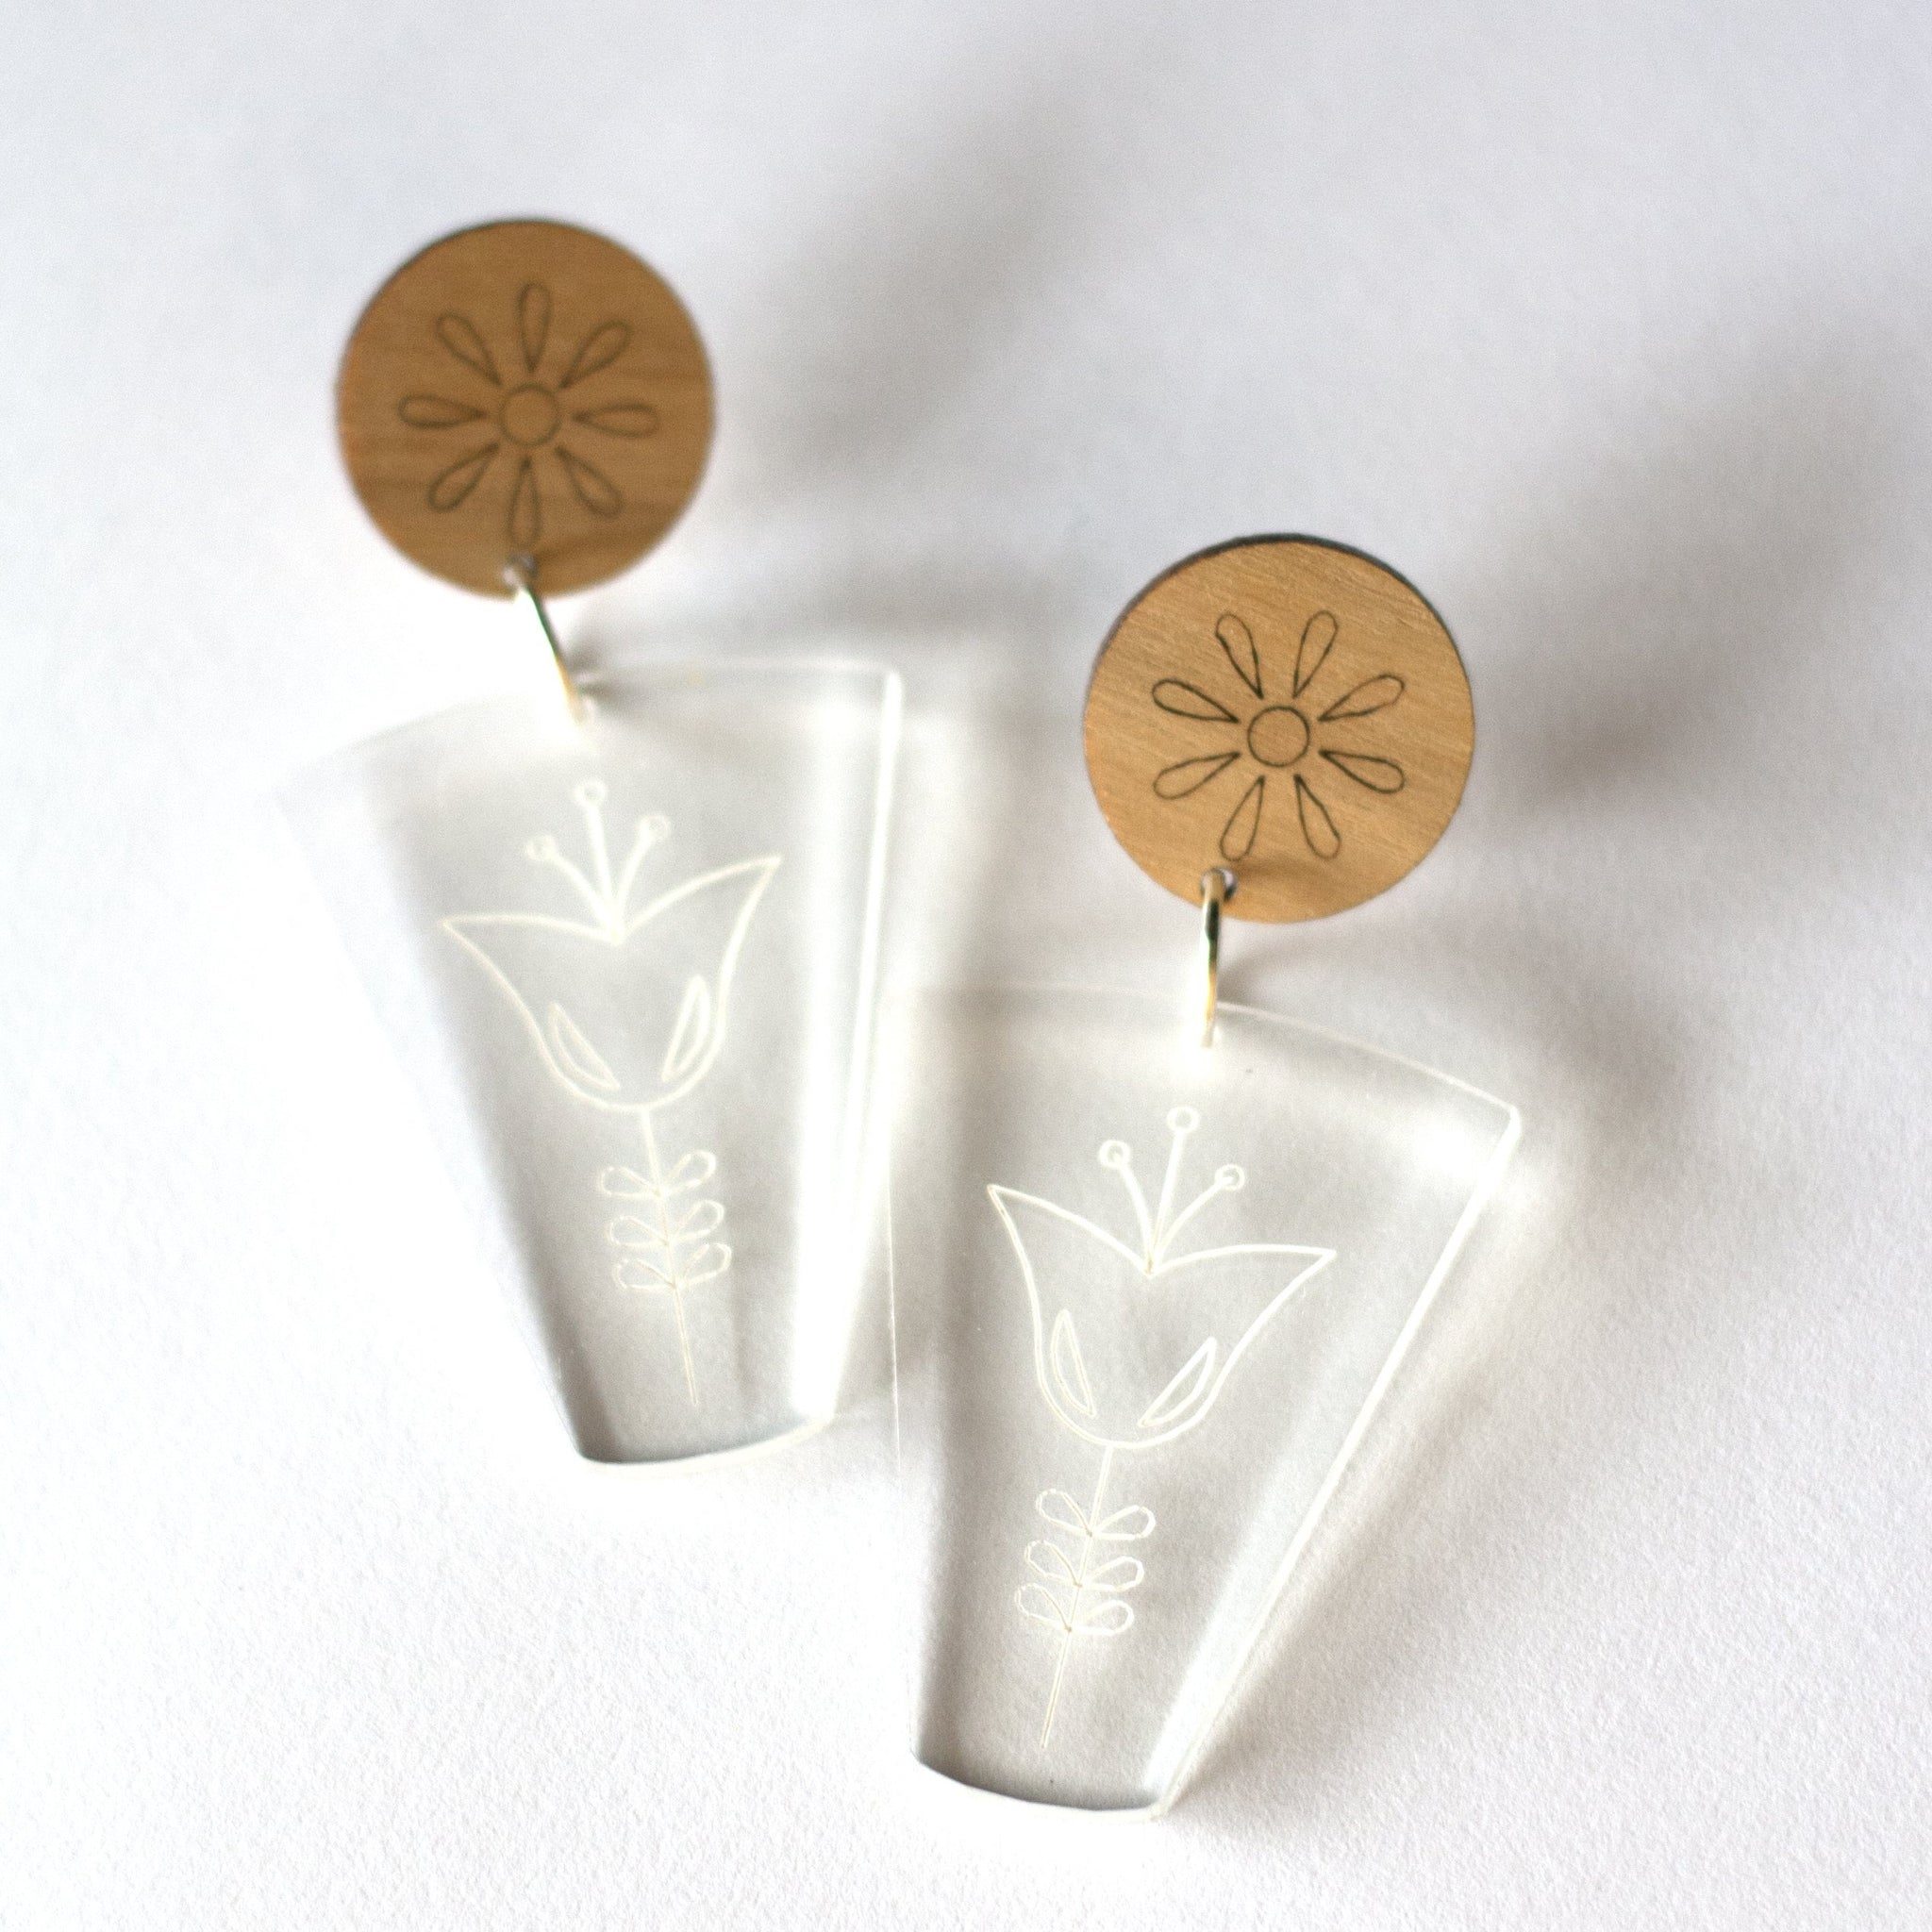 sca.har. - Acrylic and Timber Floral Dangle Studs (hpe009)